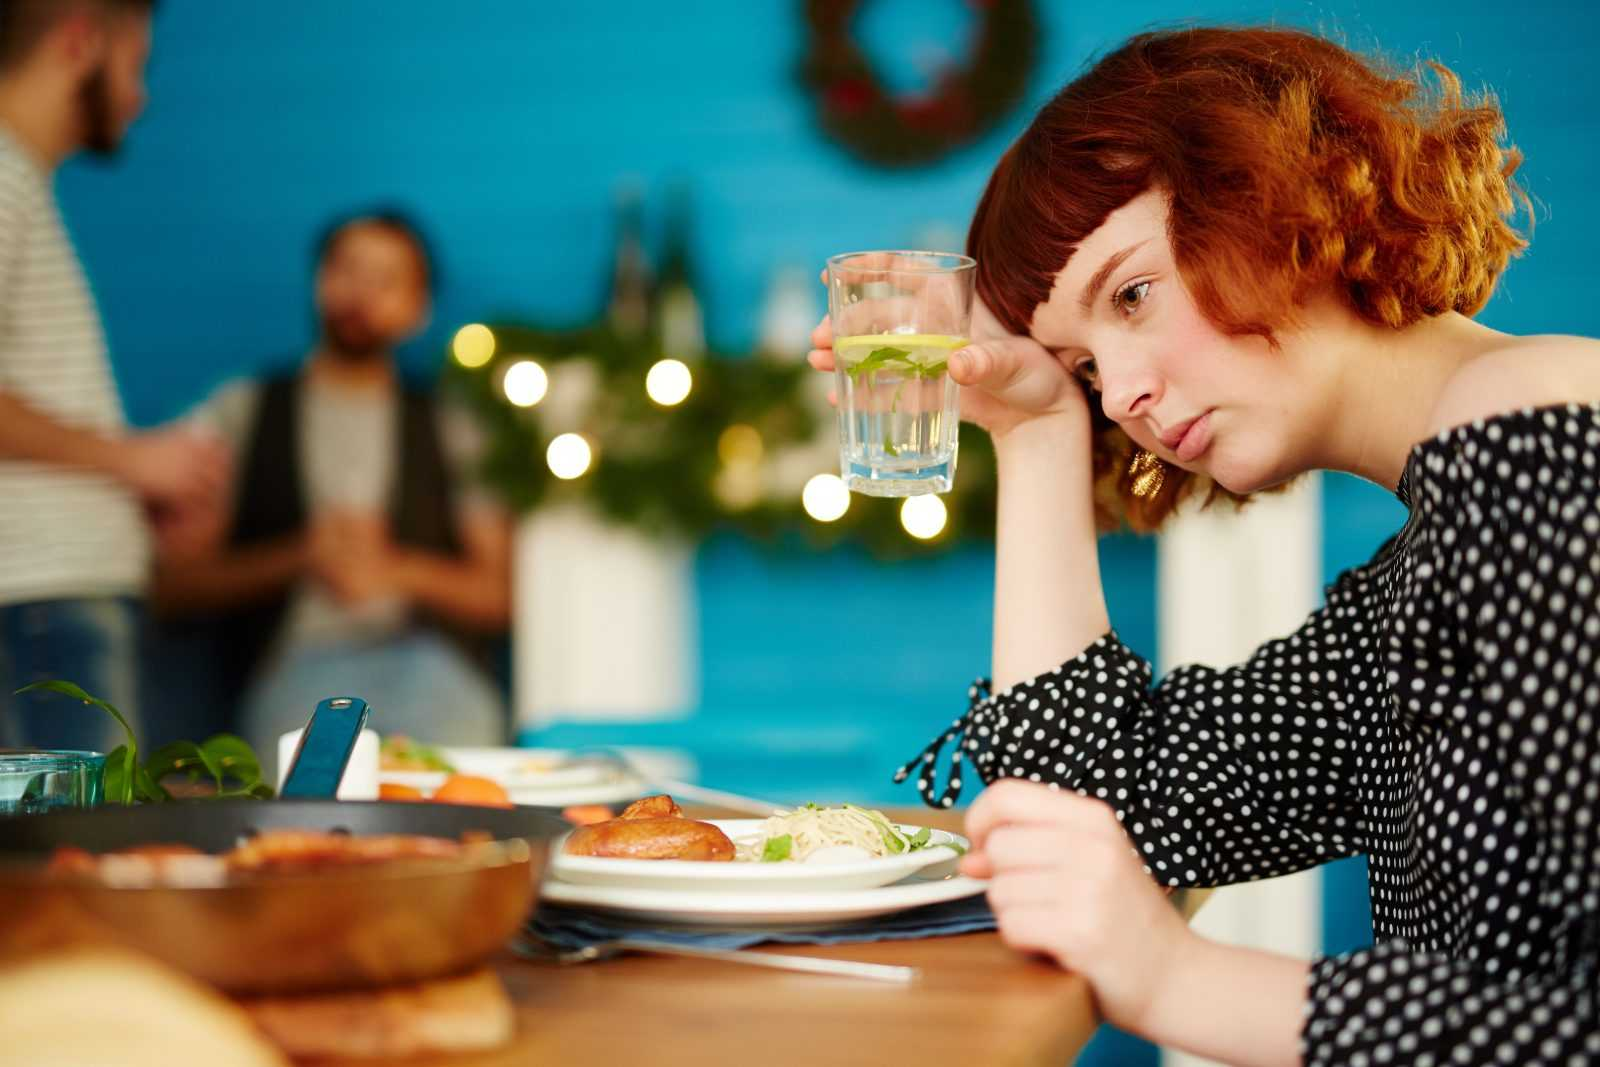 Women during family holiday dinner looking sad